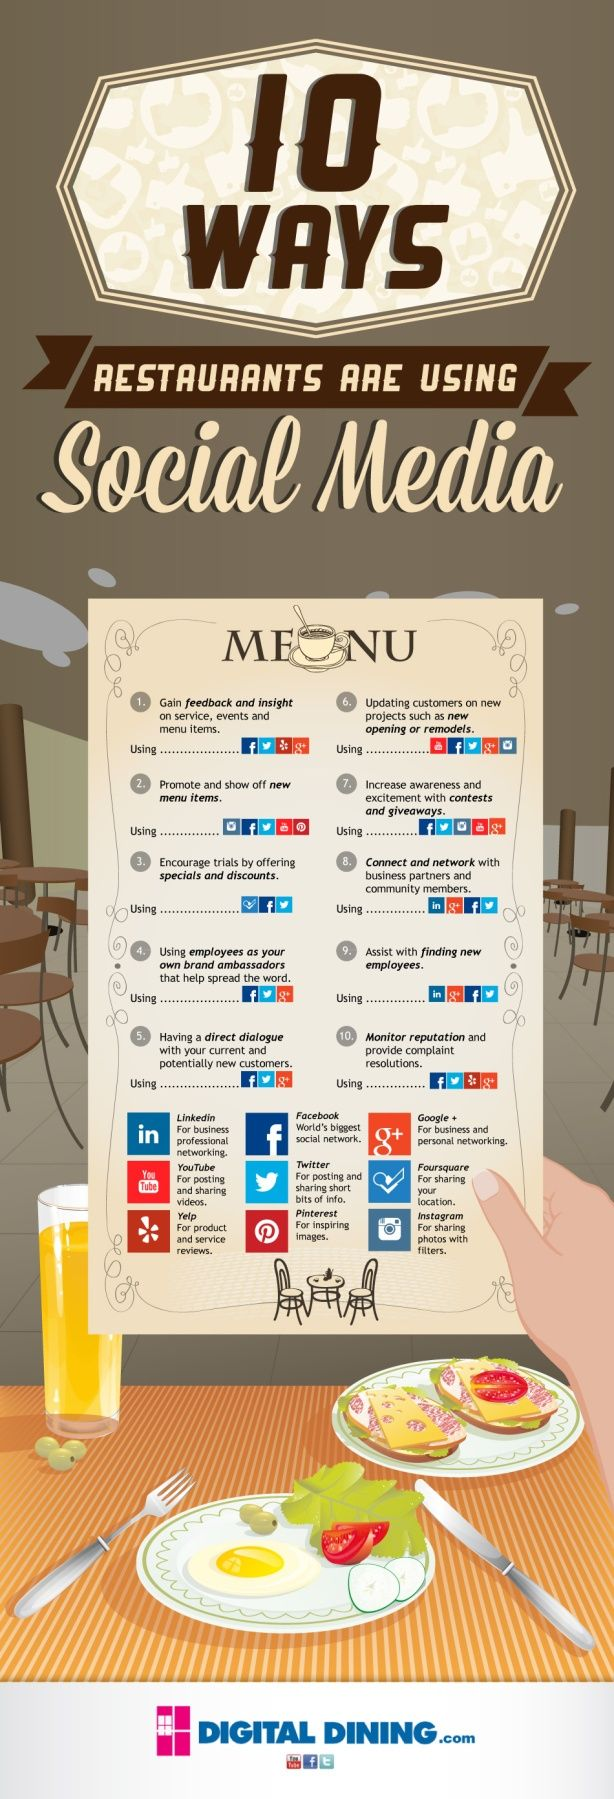 10 Ways Restaurants Are Using #SocialMedia #Infographic